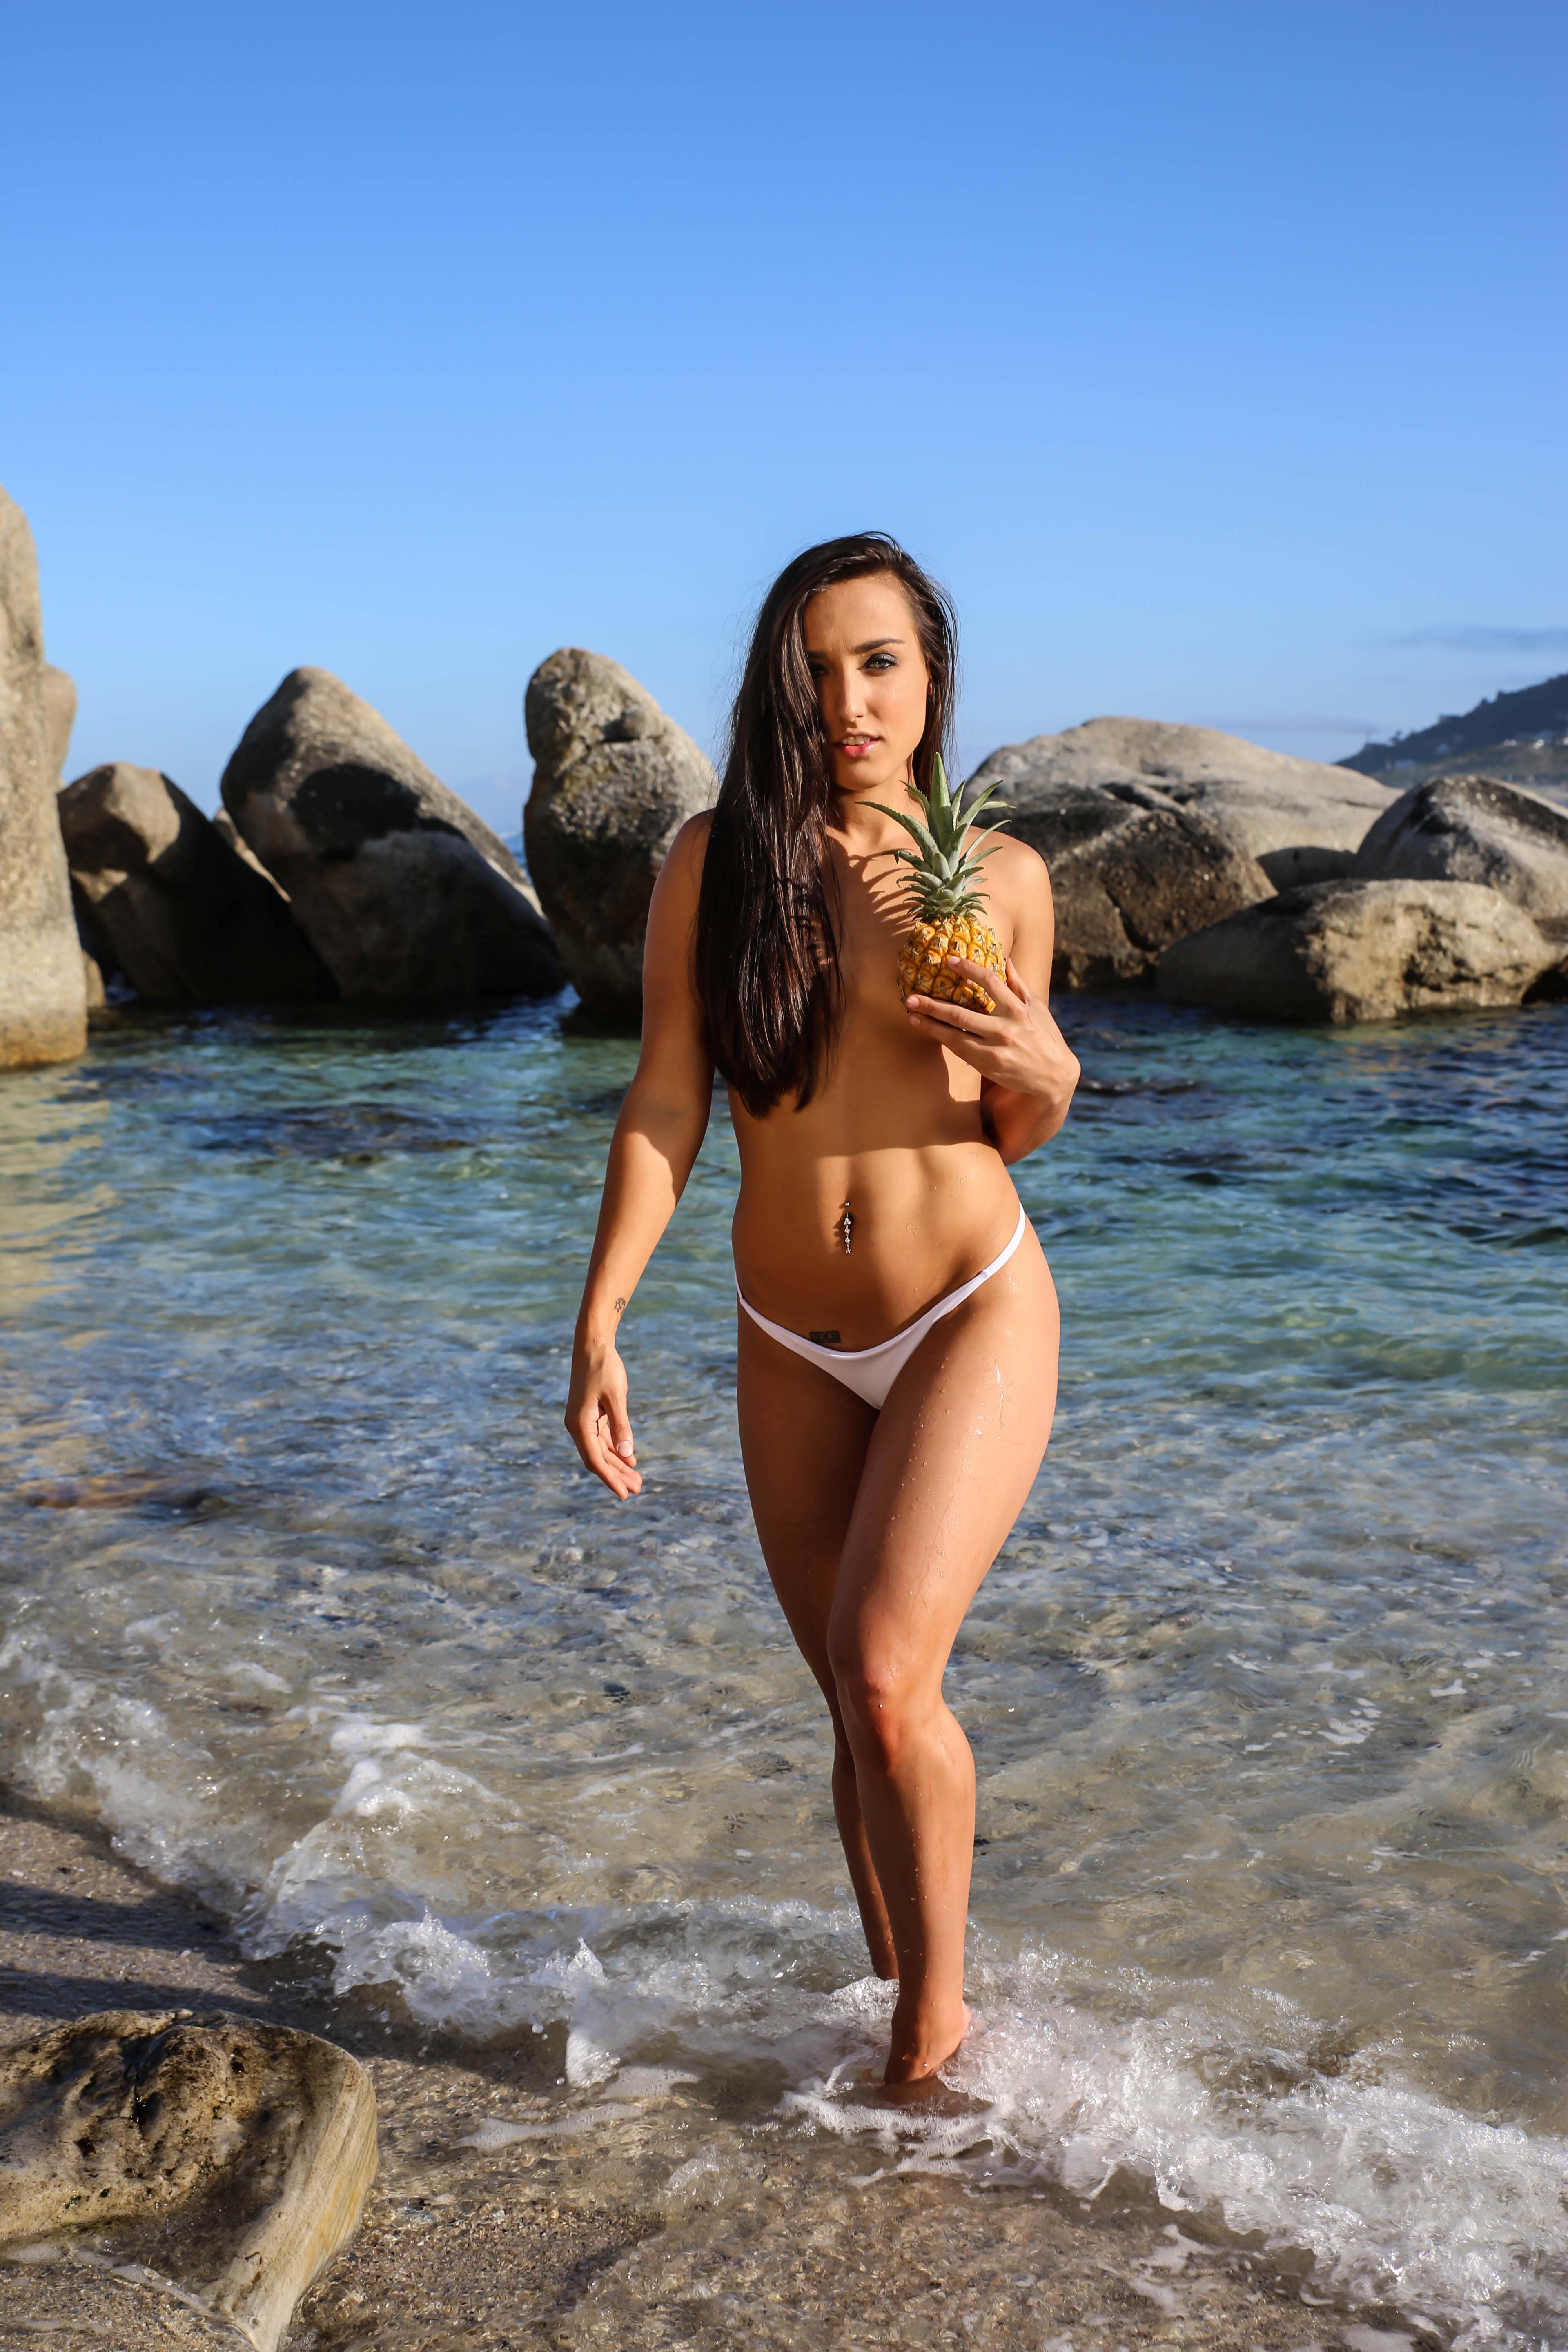 Our South African Babes feature with Cassandra Veldtman